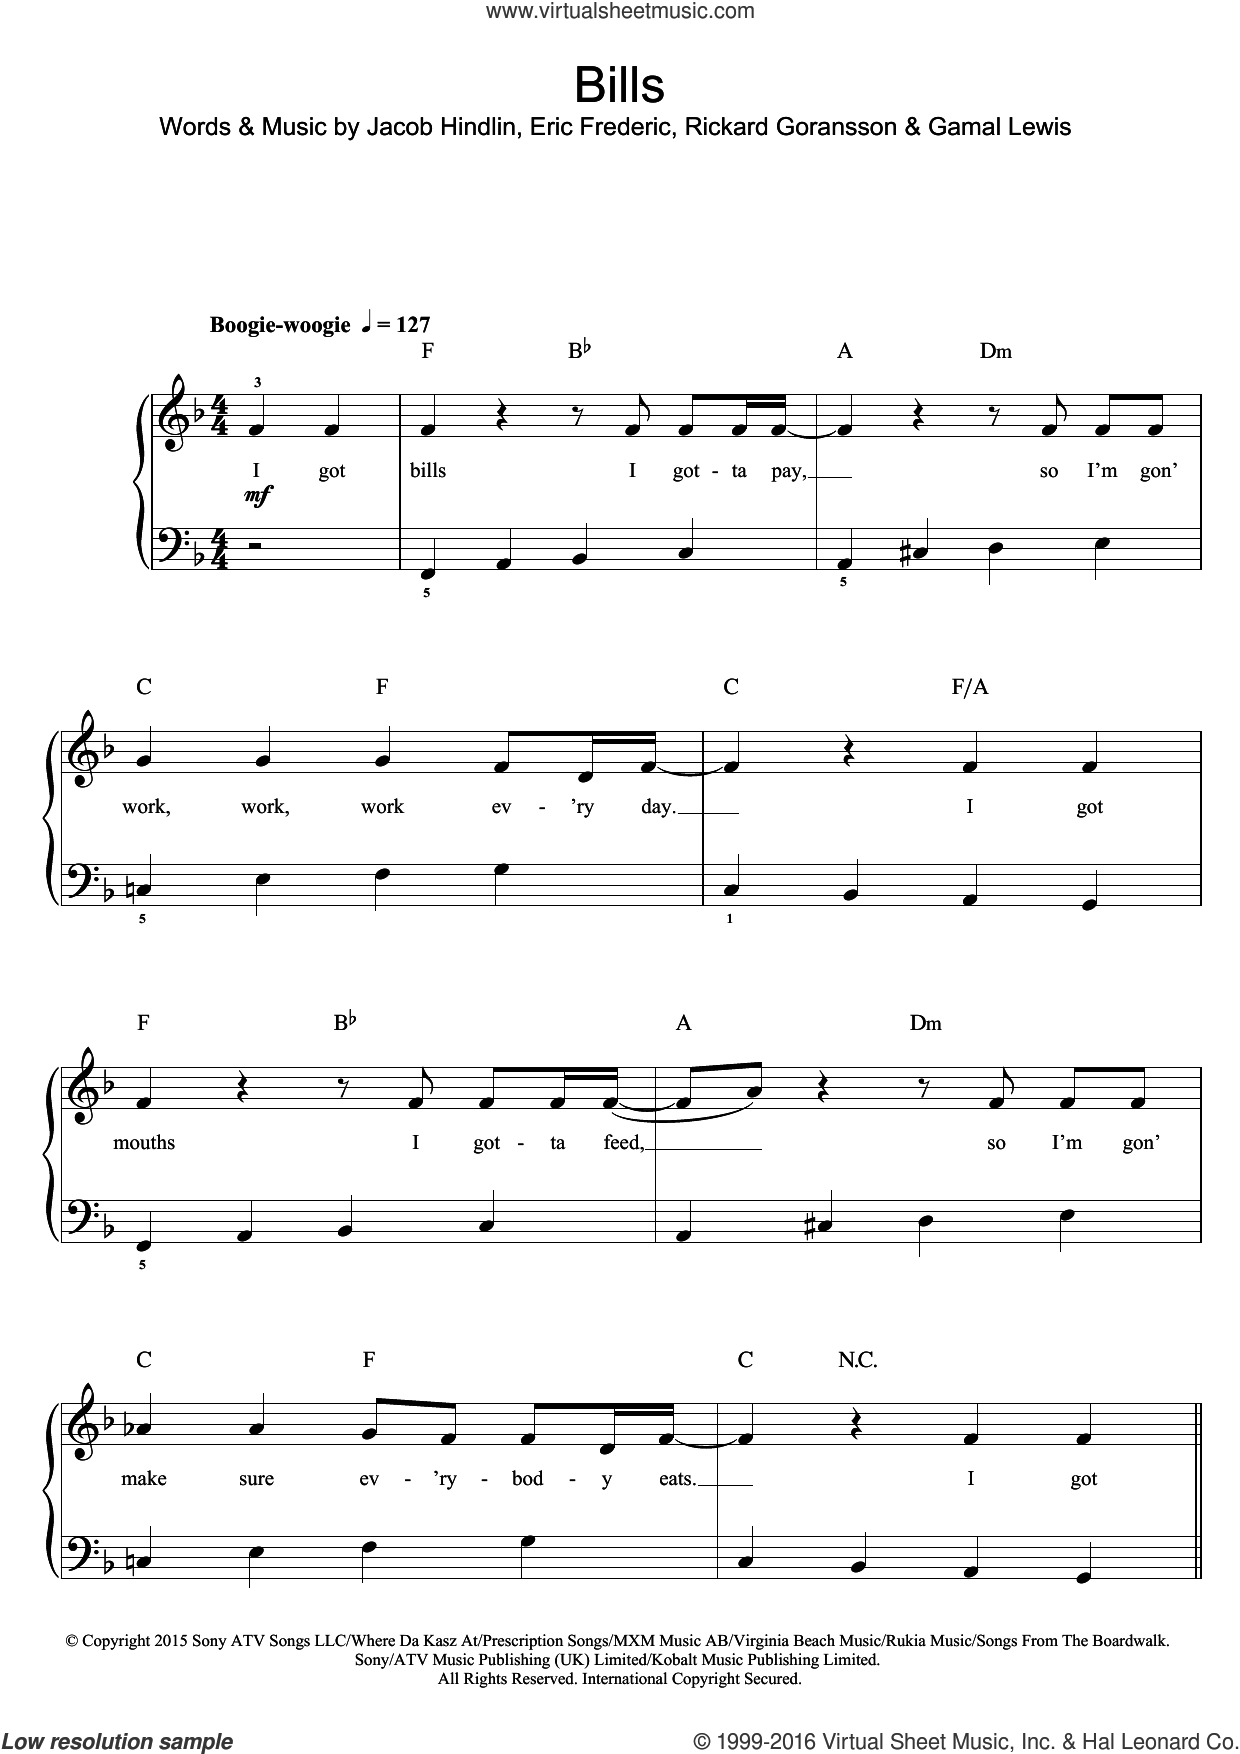 Bills sheet music for voice, piano or guitar by Rickard Goransson